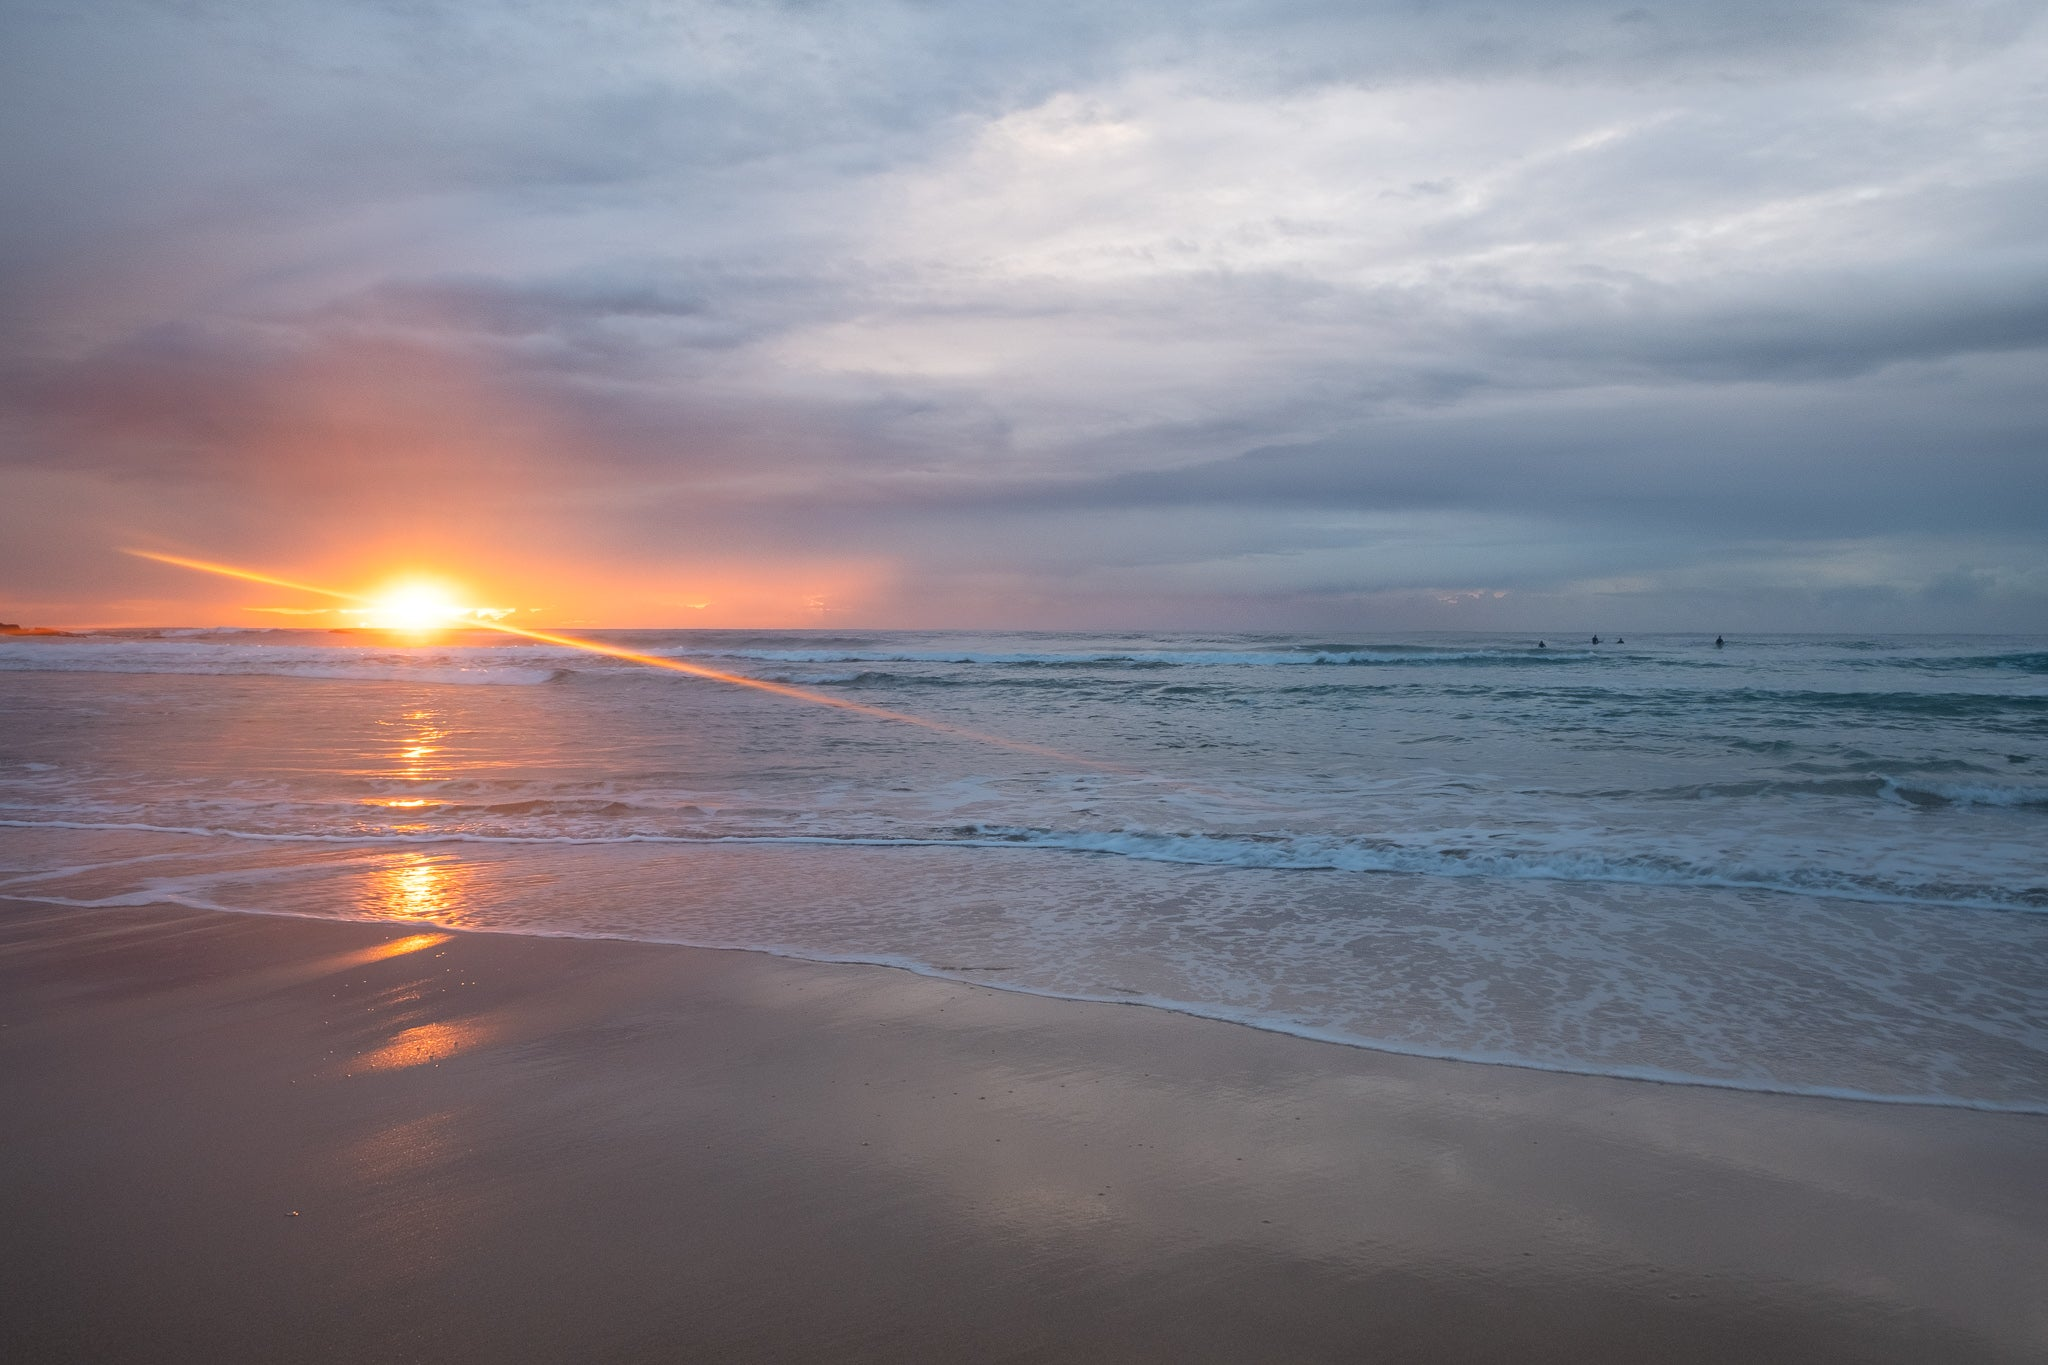 Sunrise photo from the 8th July 2019 at Queenscliff beach in Sydney